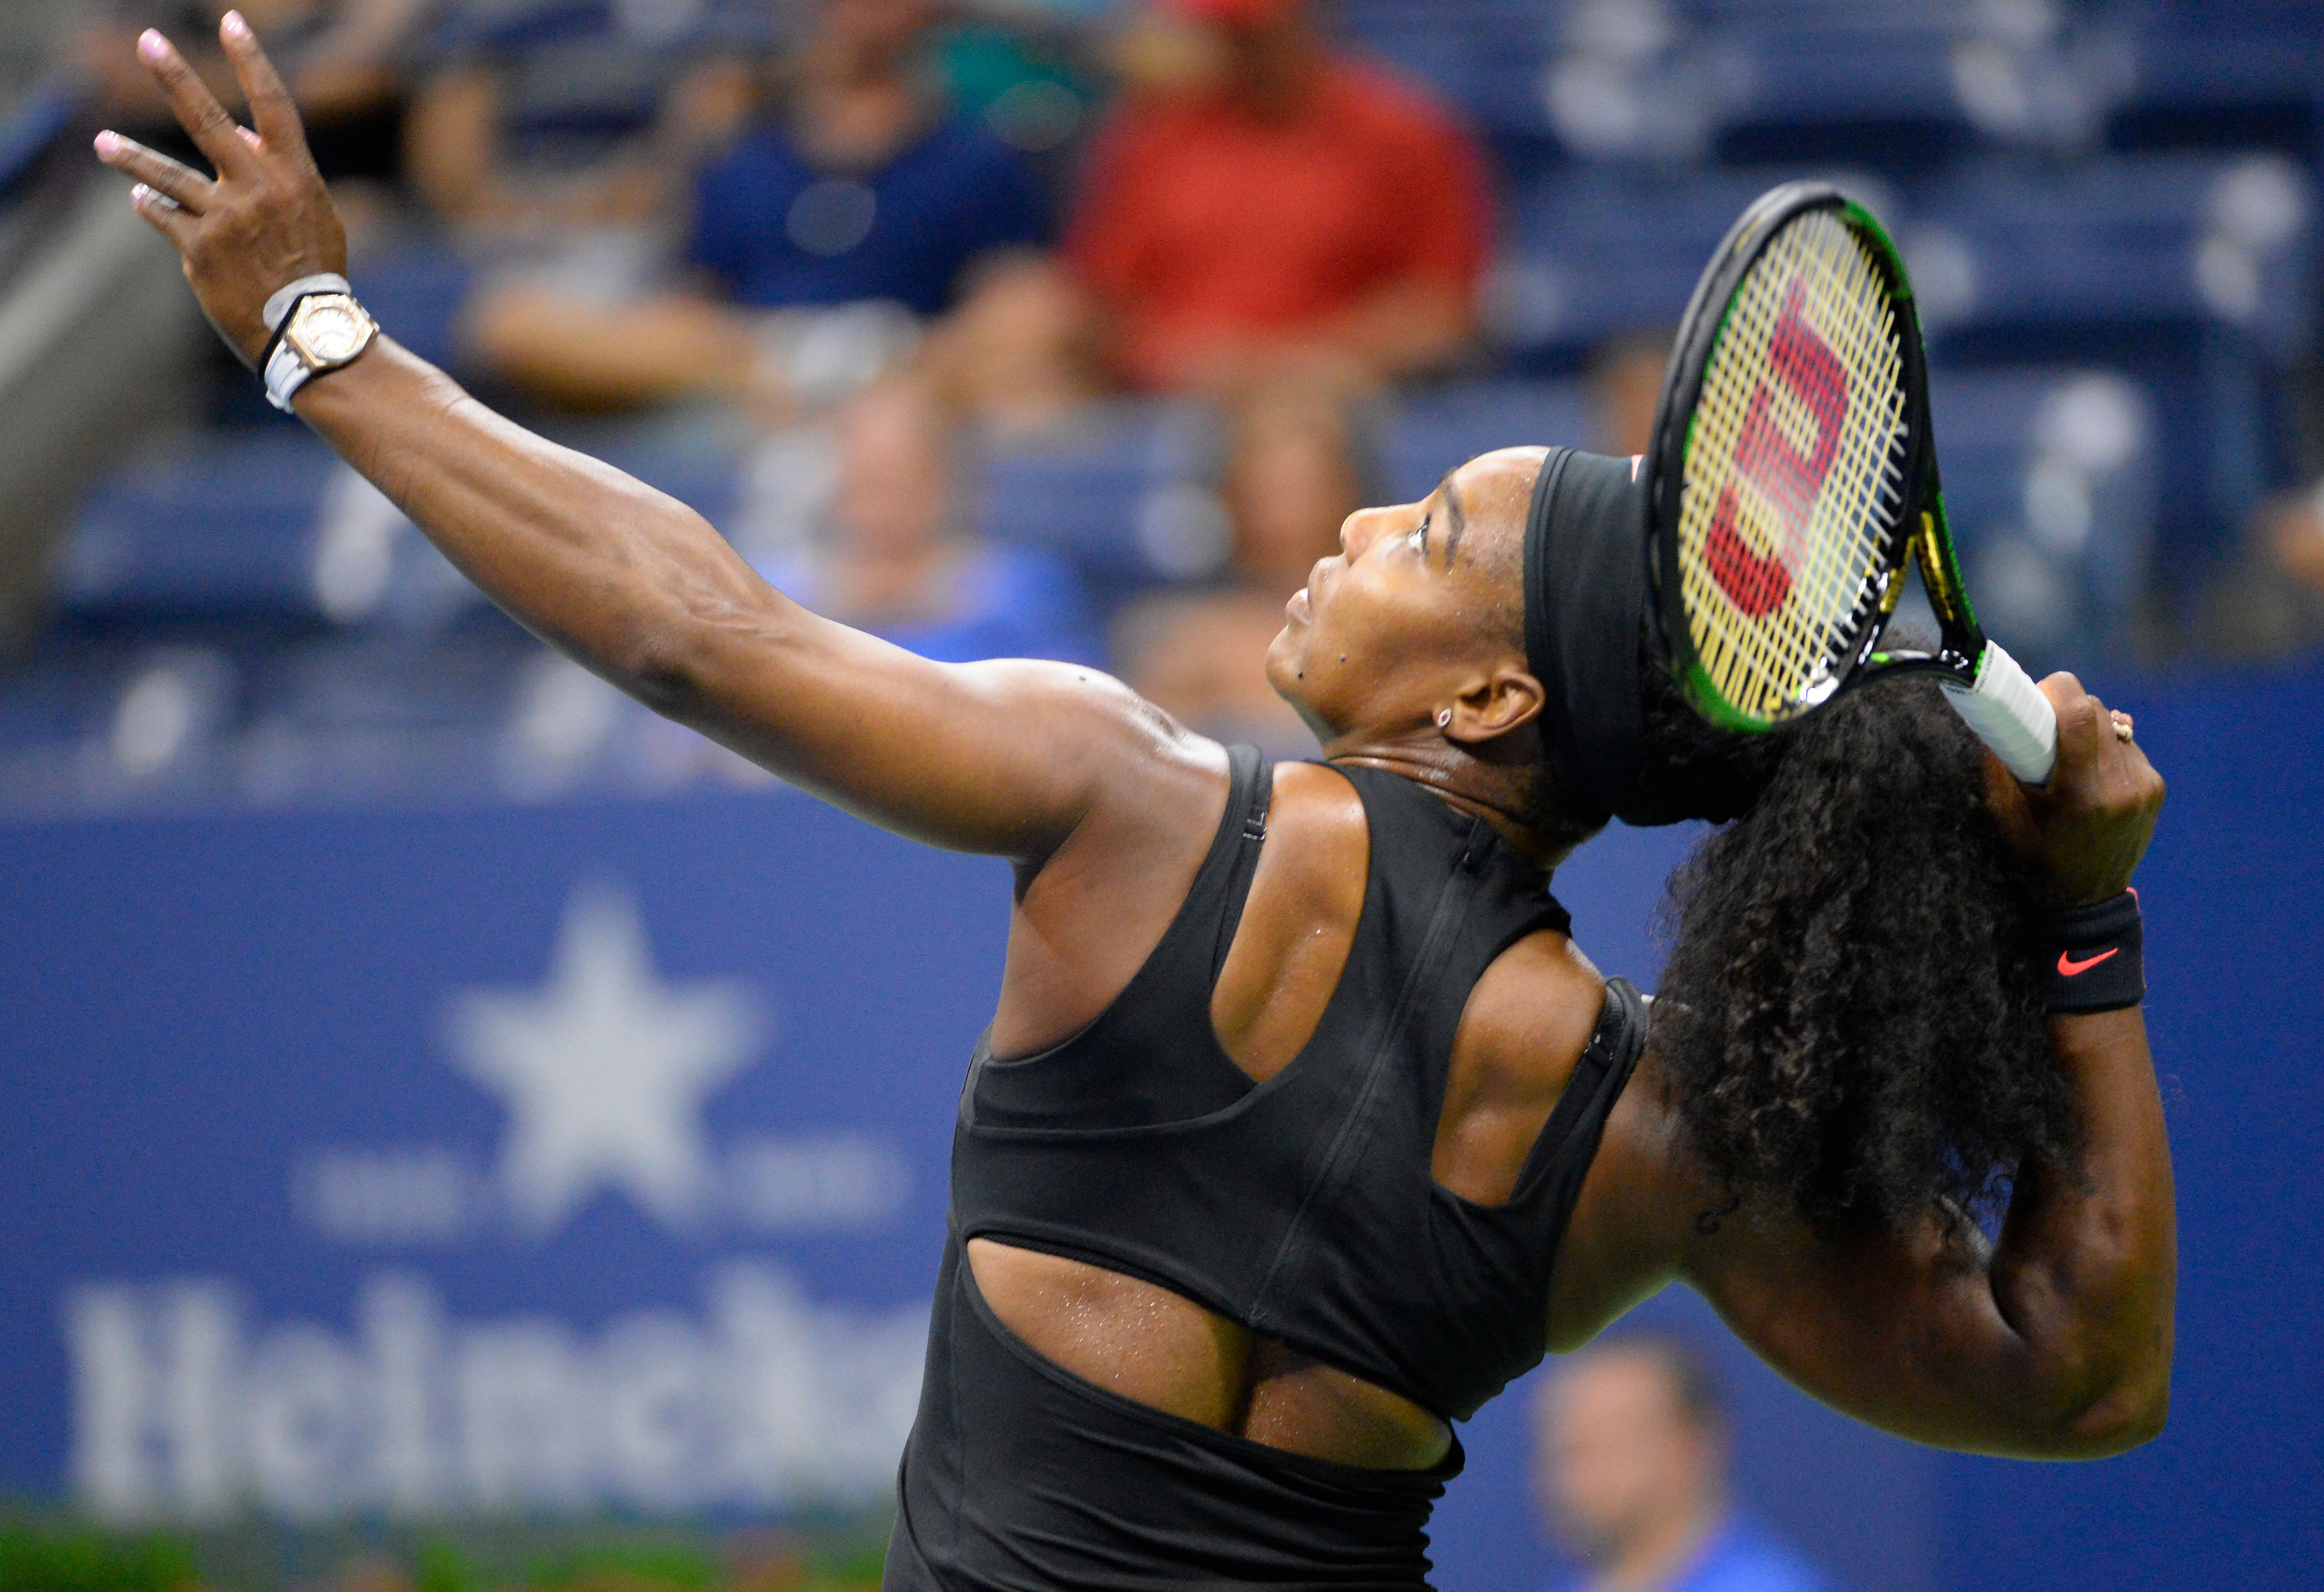 Aug 31, 2015; New York, NY, USA; Serena Williams of the United States serves to Vitalia Diatchenko of Russia on day one of the 2015 US Open tennis tournament at USTA Billie Jean King National Tennis Center. Mandatory Credit: Robert Deutsch-USA TODAY Sports